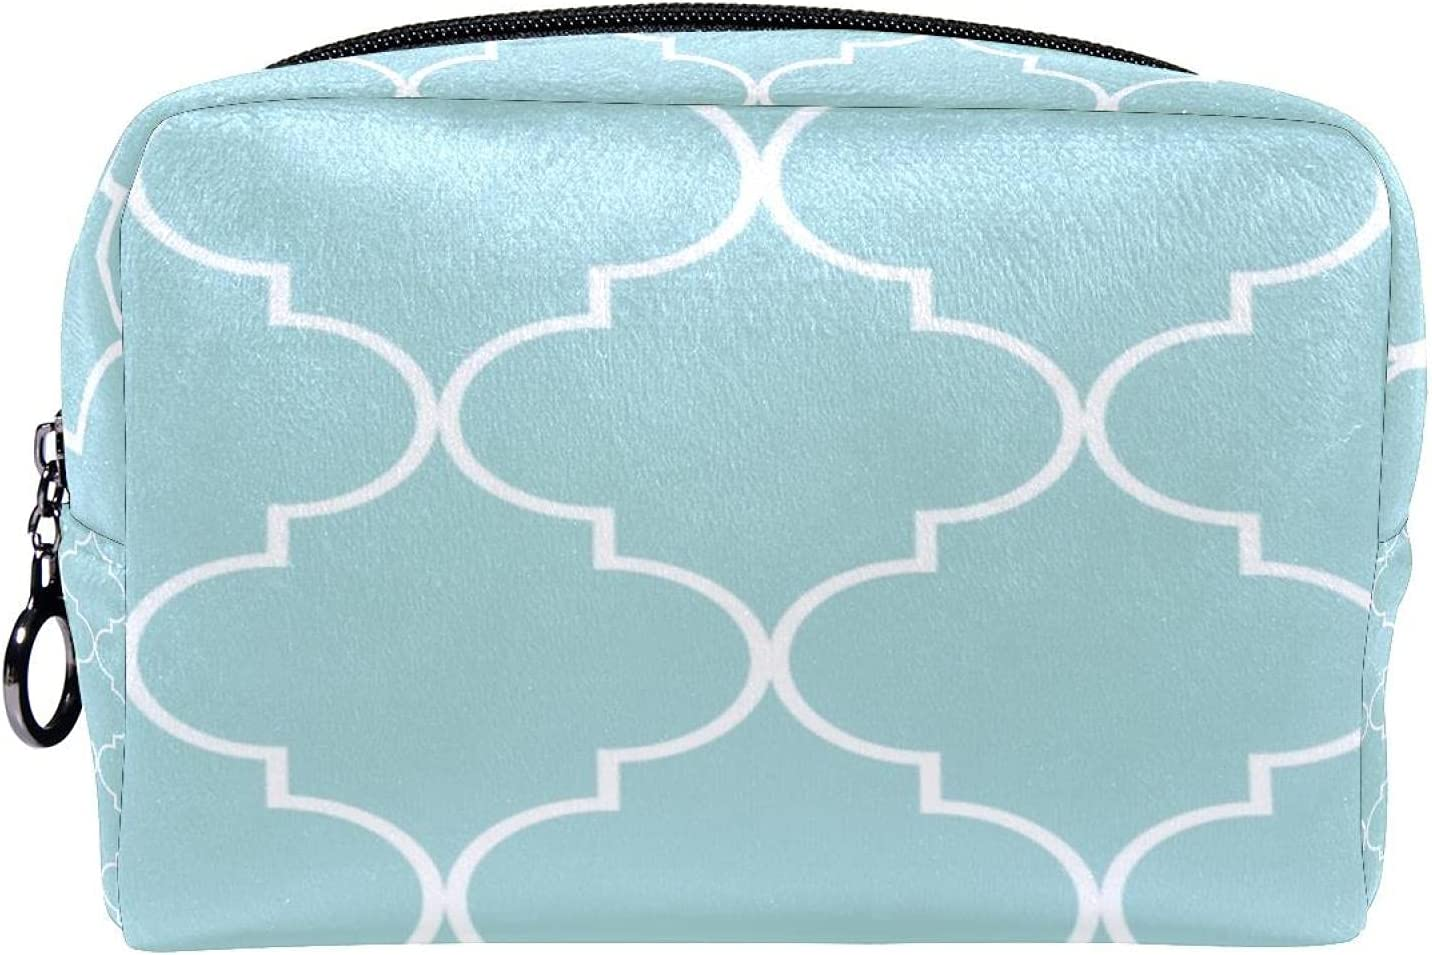 Max 71% OFF Makeup Toiletry Complete Free Shipping Bag Purse Cosmetic quatrefoil geometric